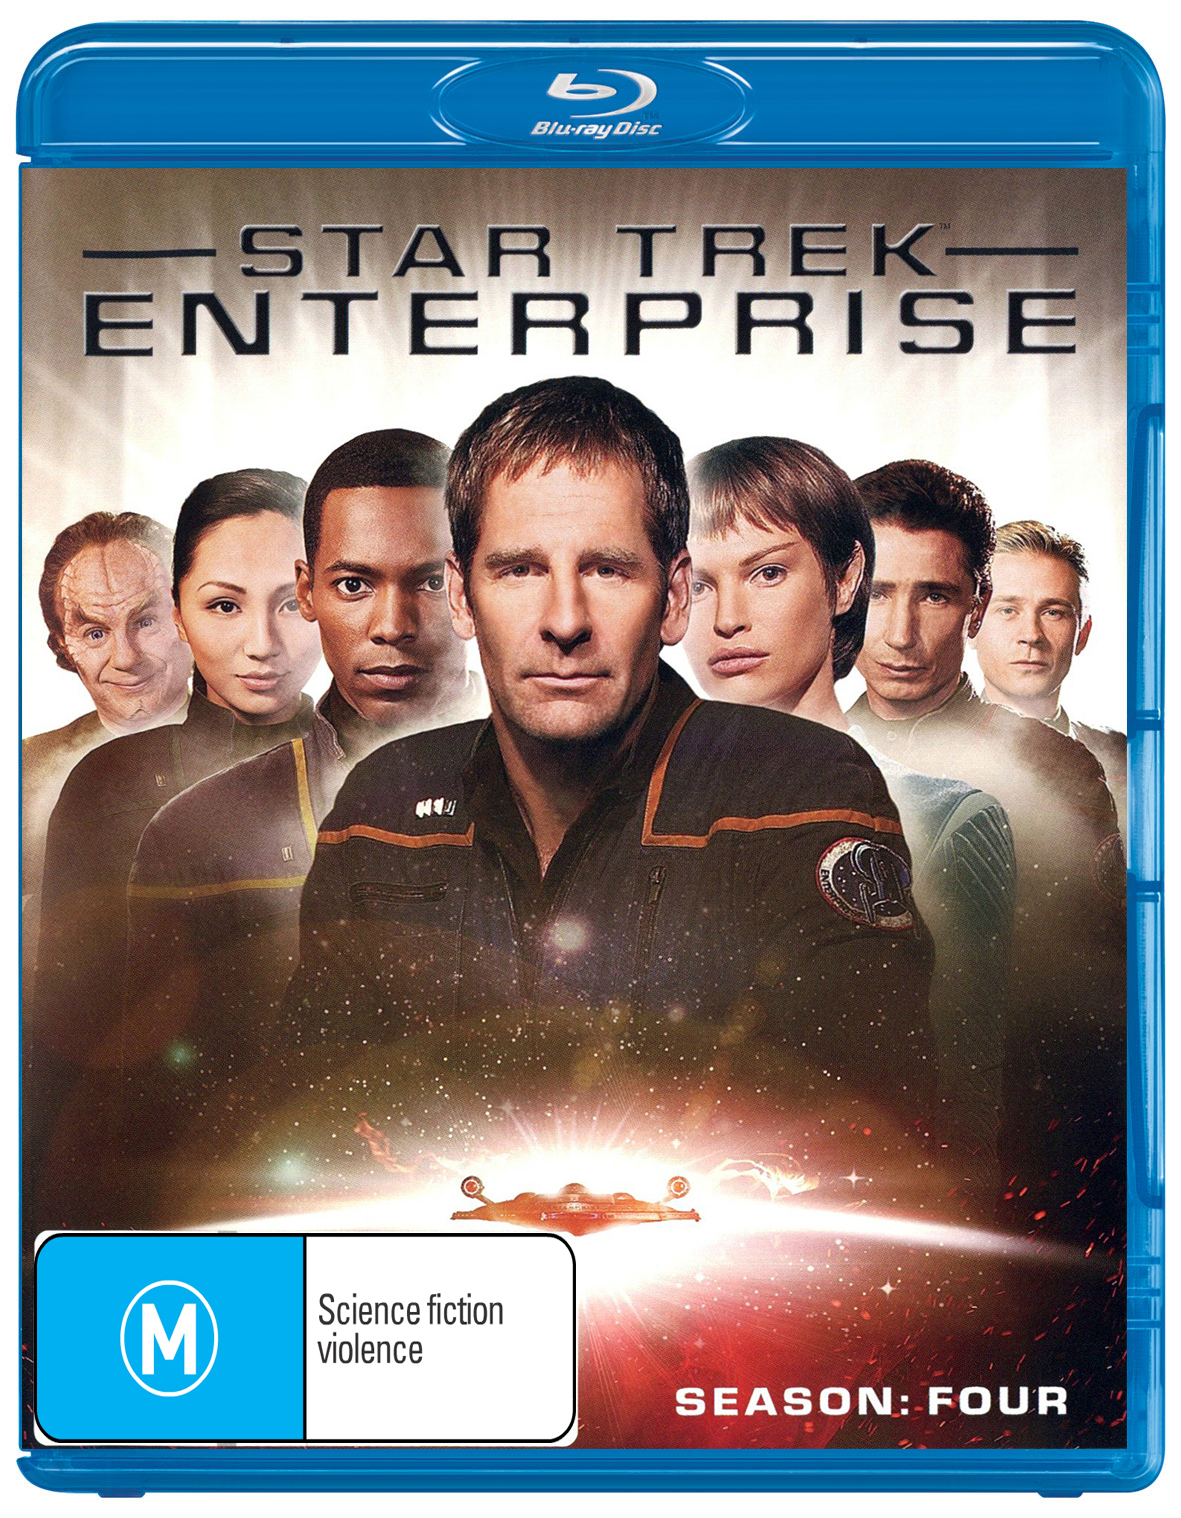 Star Trek Enterprise - Season Four on Blu-ray image